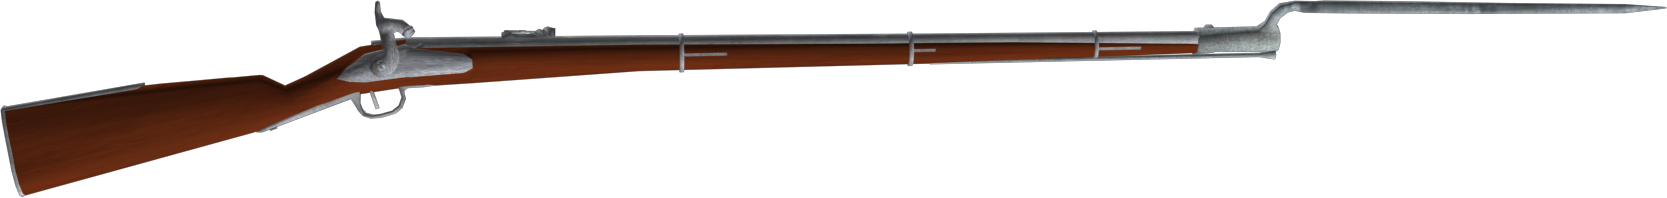 musket_p1855.png